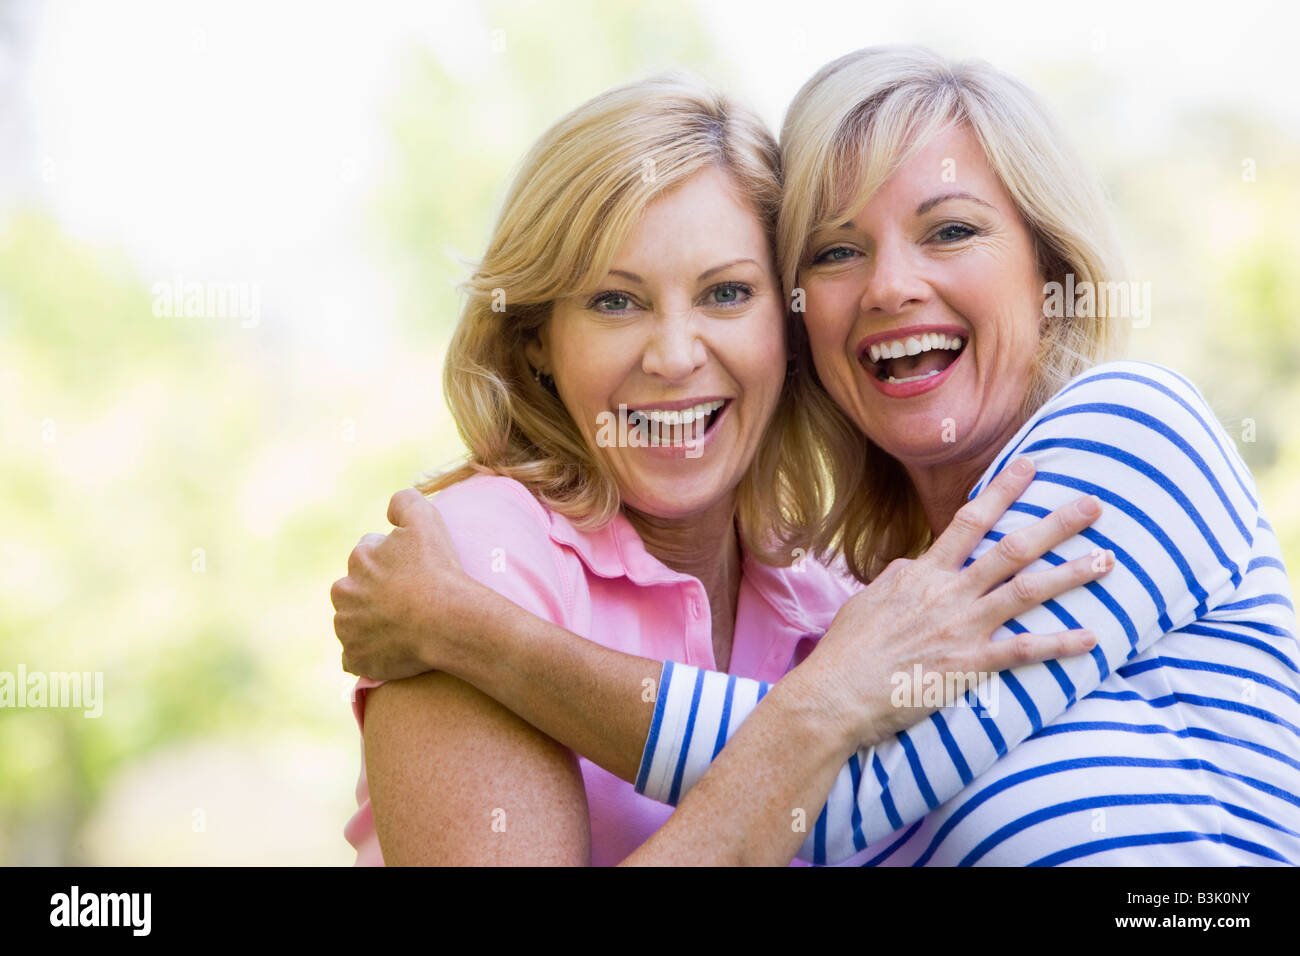 Two women outdoors hugging and smiling - Stock Image